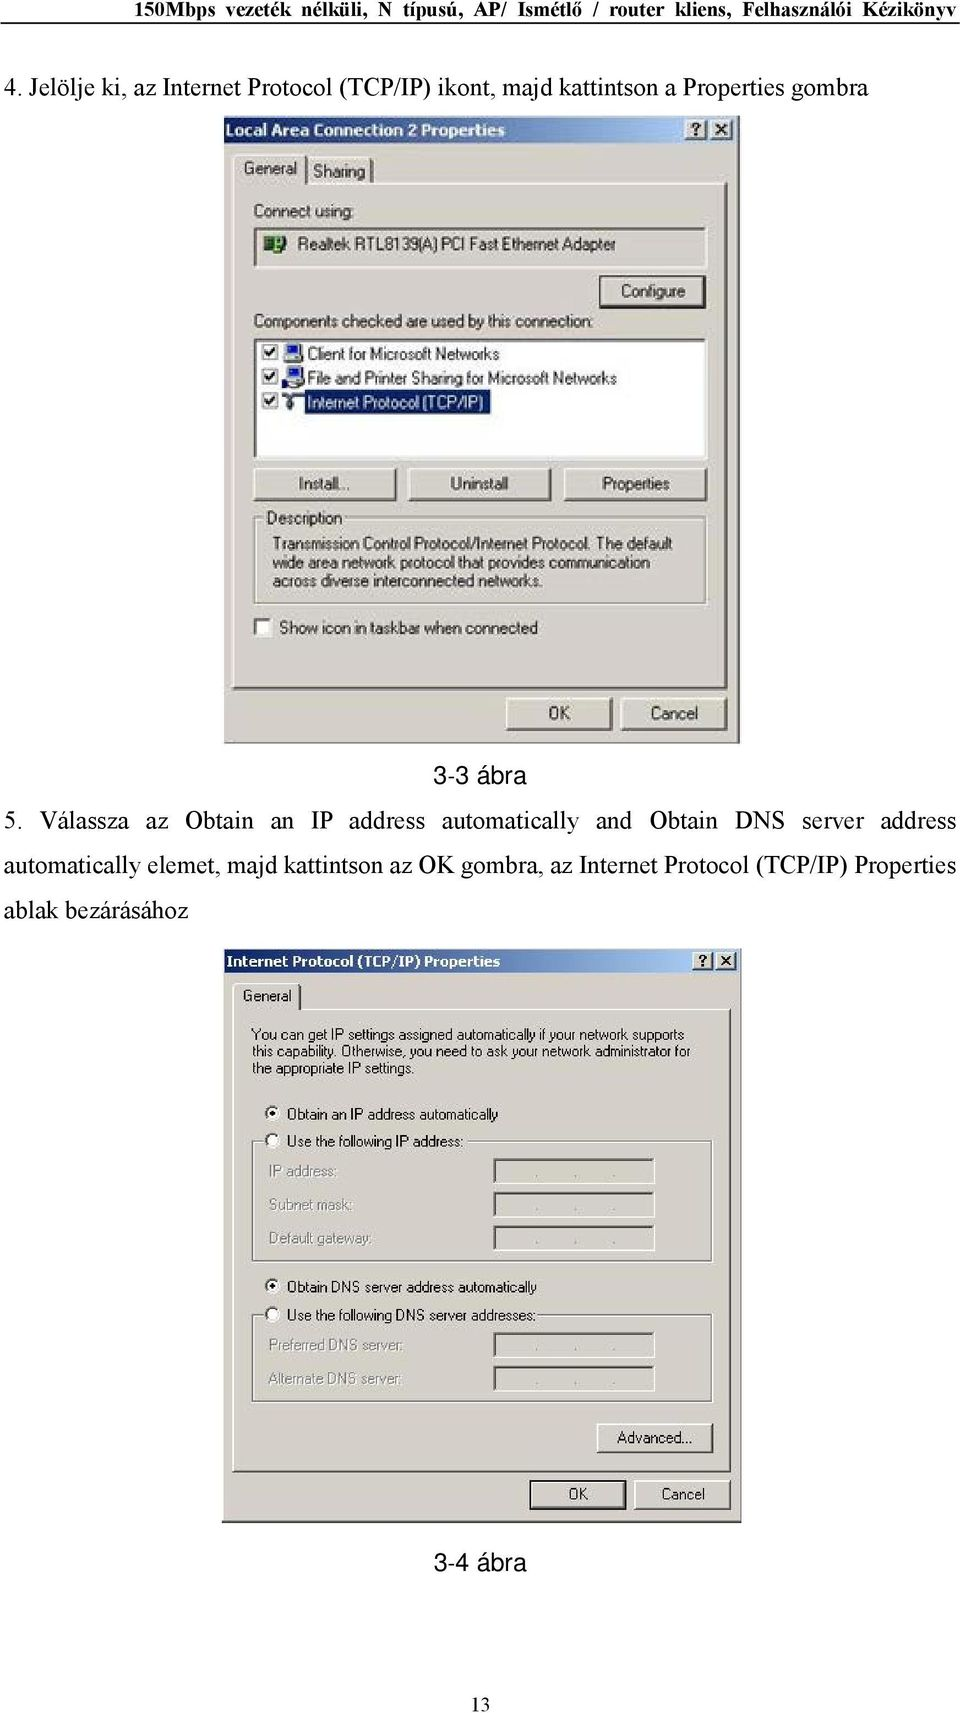 Válassza az Obtain an IP address automatically and Obtain DNS server